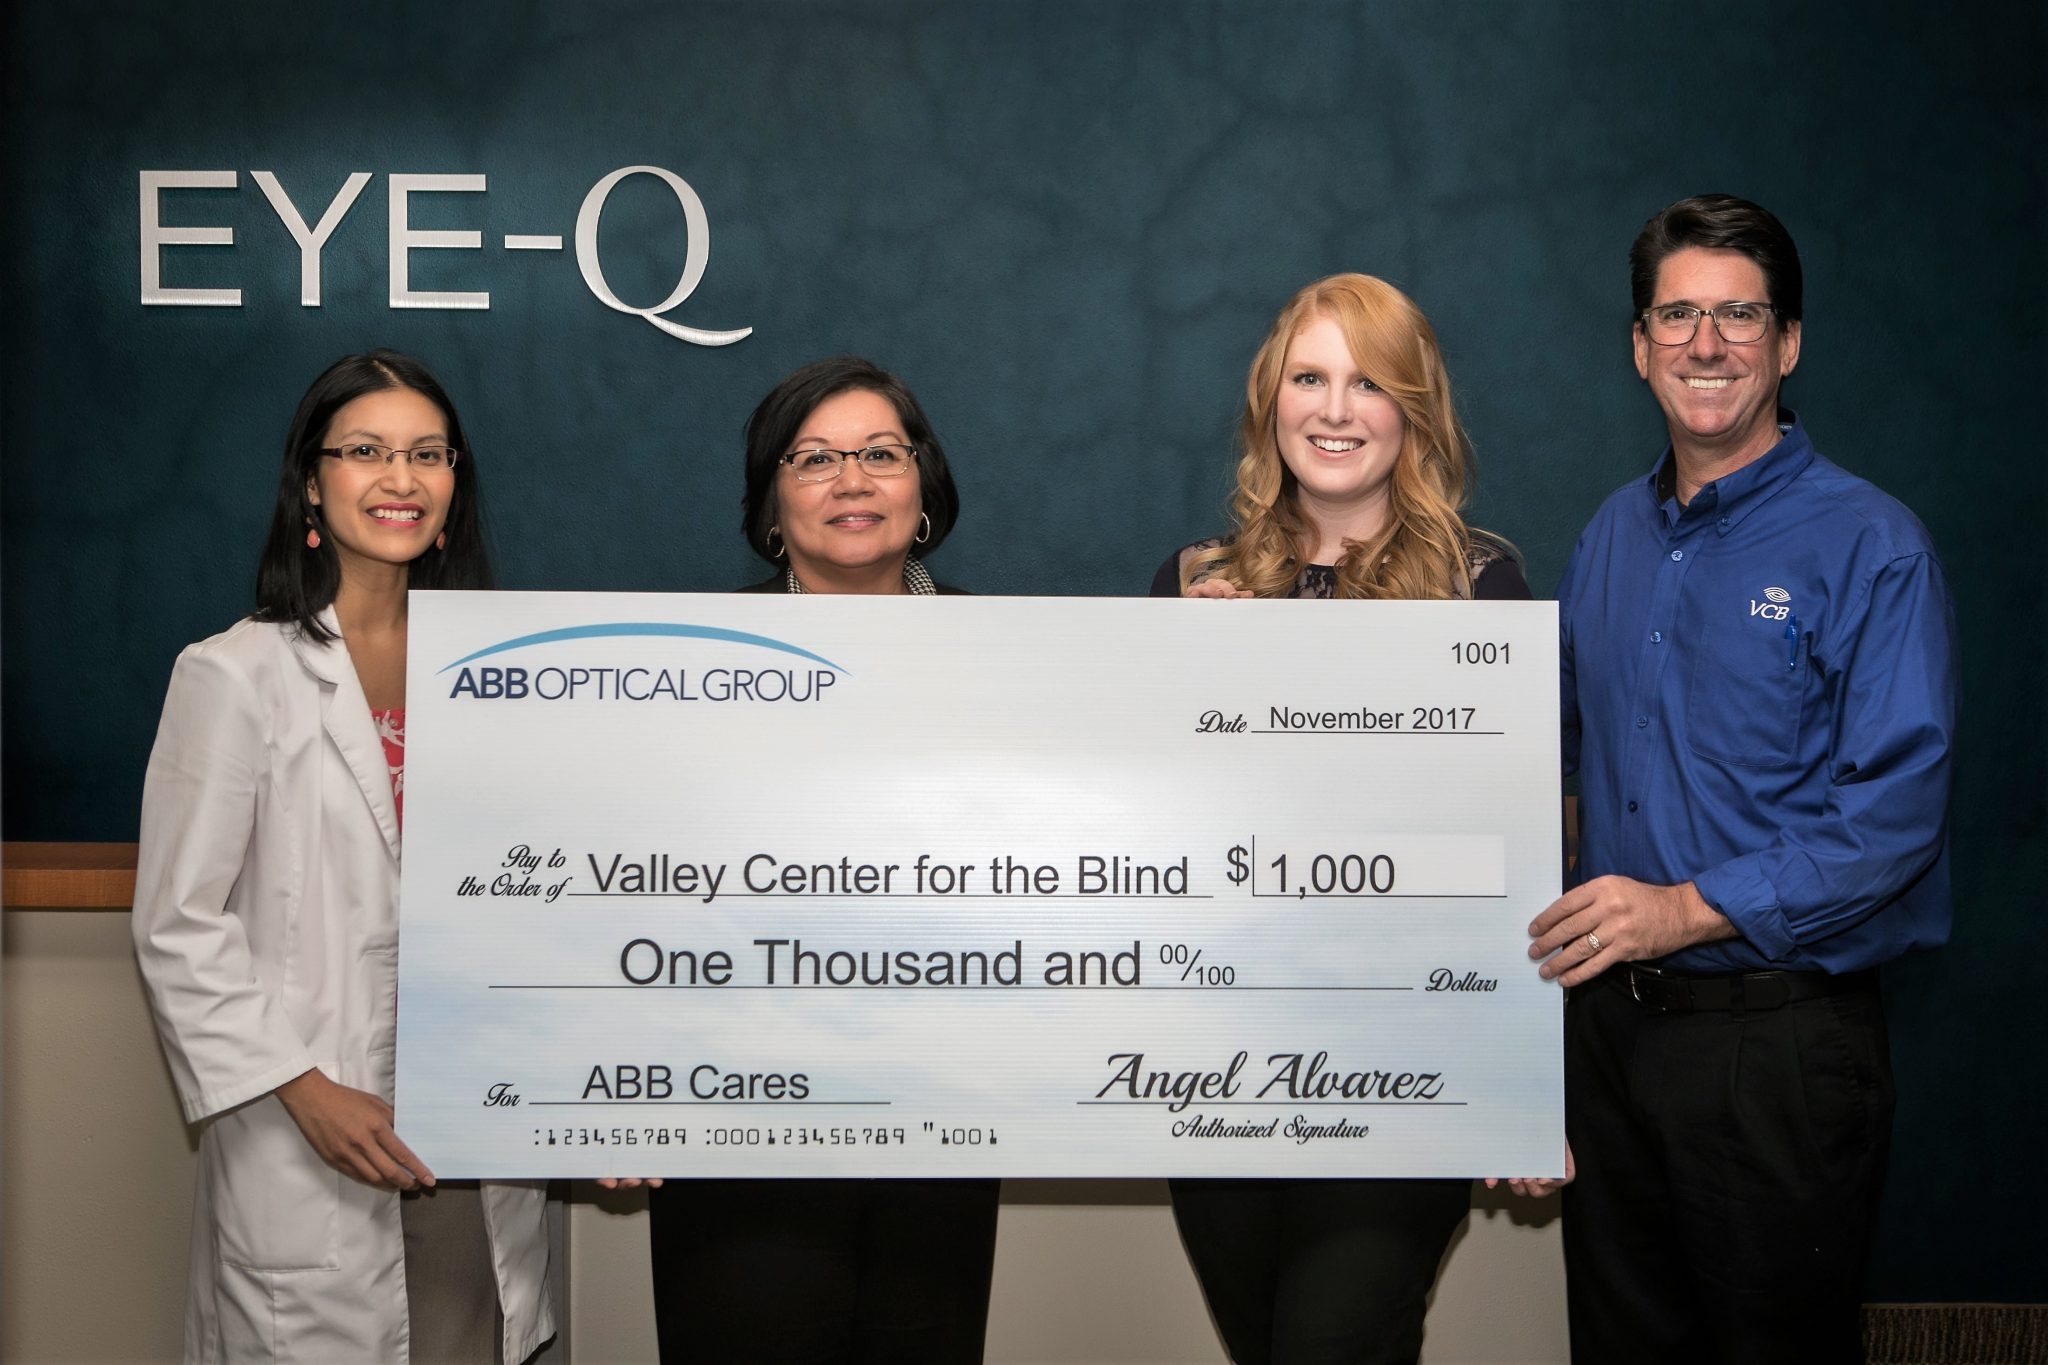 EYE-Q SUPPORTS LOCAL ORGANIZATION